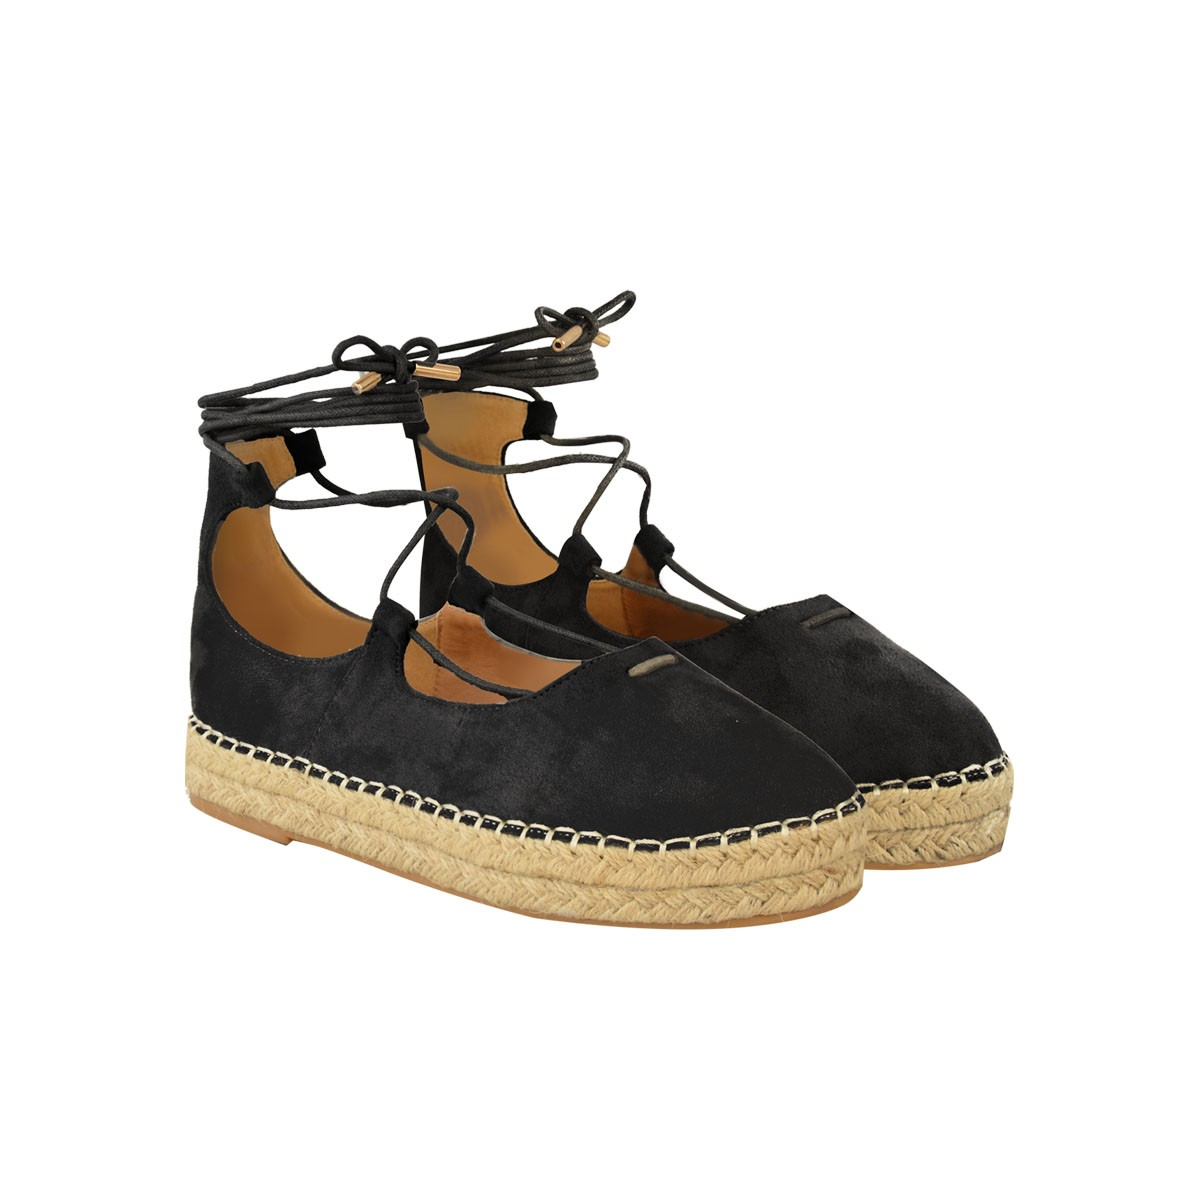 Peep Toe Espadrille Wedge | Tie Up Espadrilles | Espadrilles Tie Up